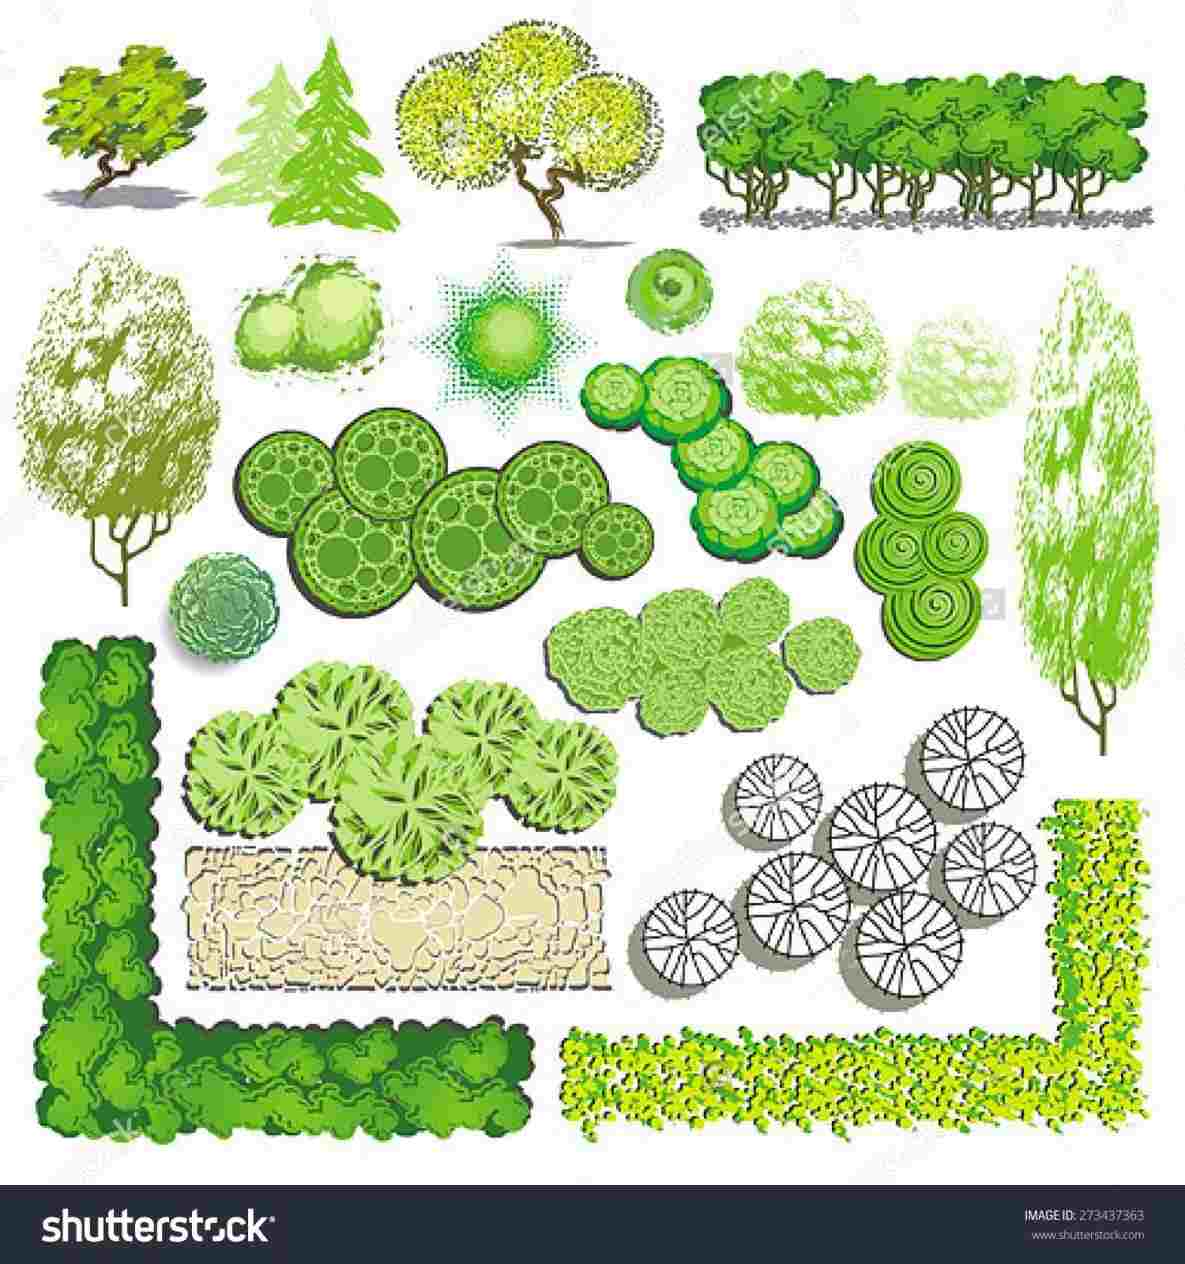 1185x1264 Plant Rhclipgoocom Tree Tree Plan View Vector Plan Stock Photos